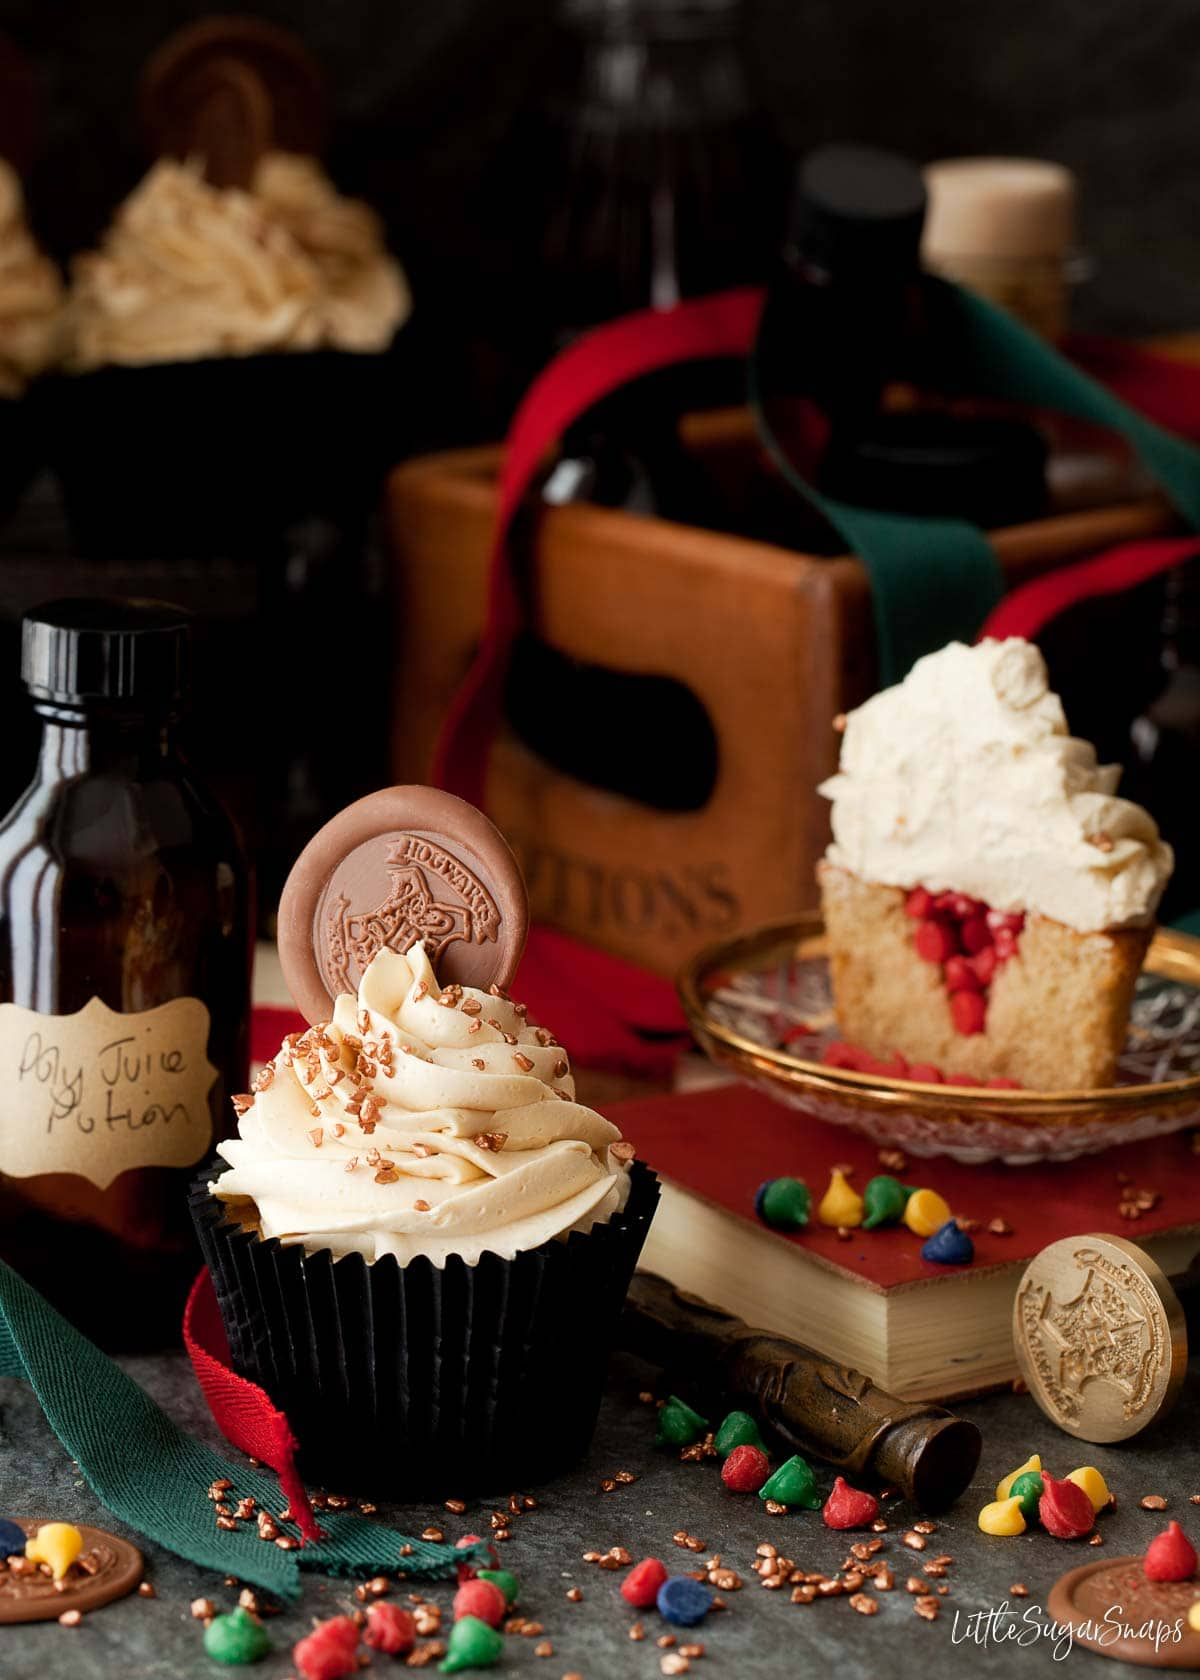 Harry potter sorting hat cupcakes with Gryffindor coloured candy drops inside